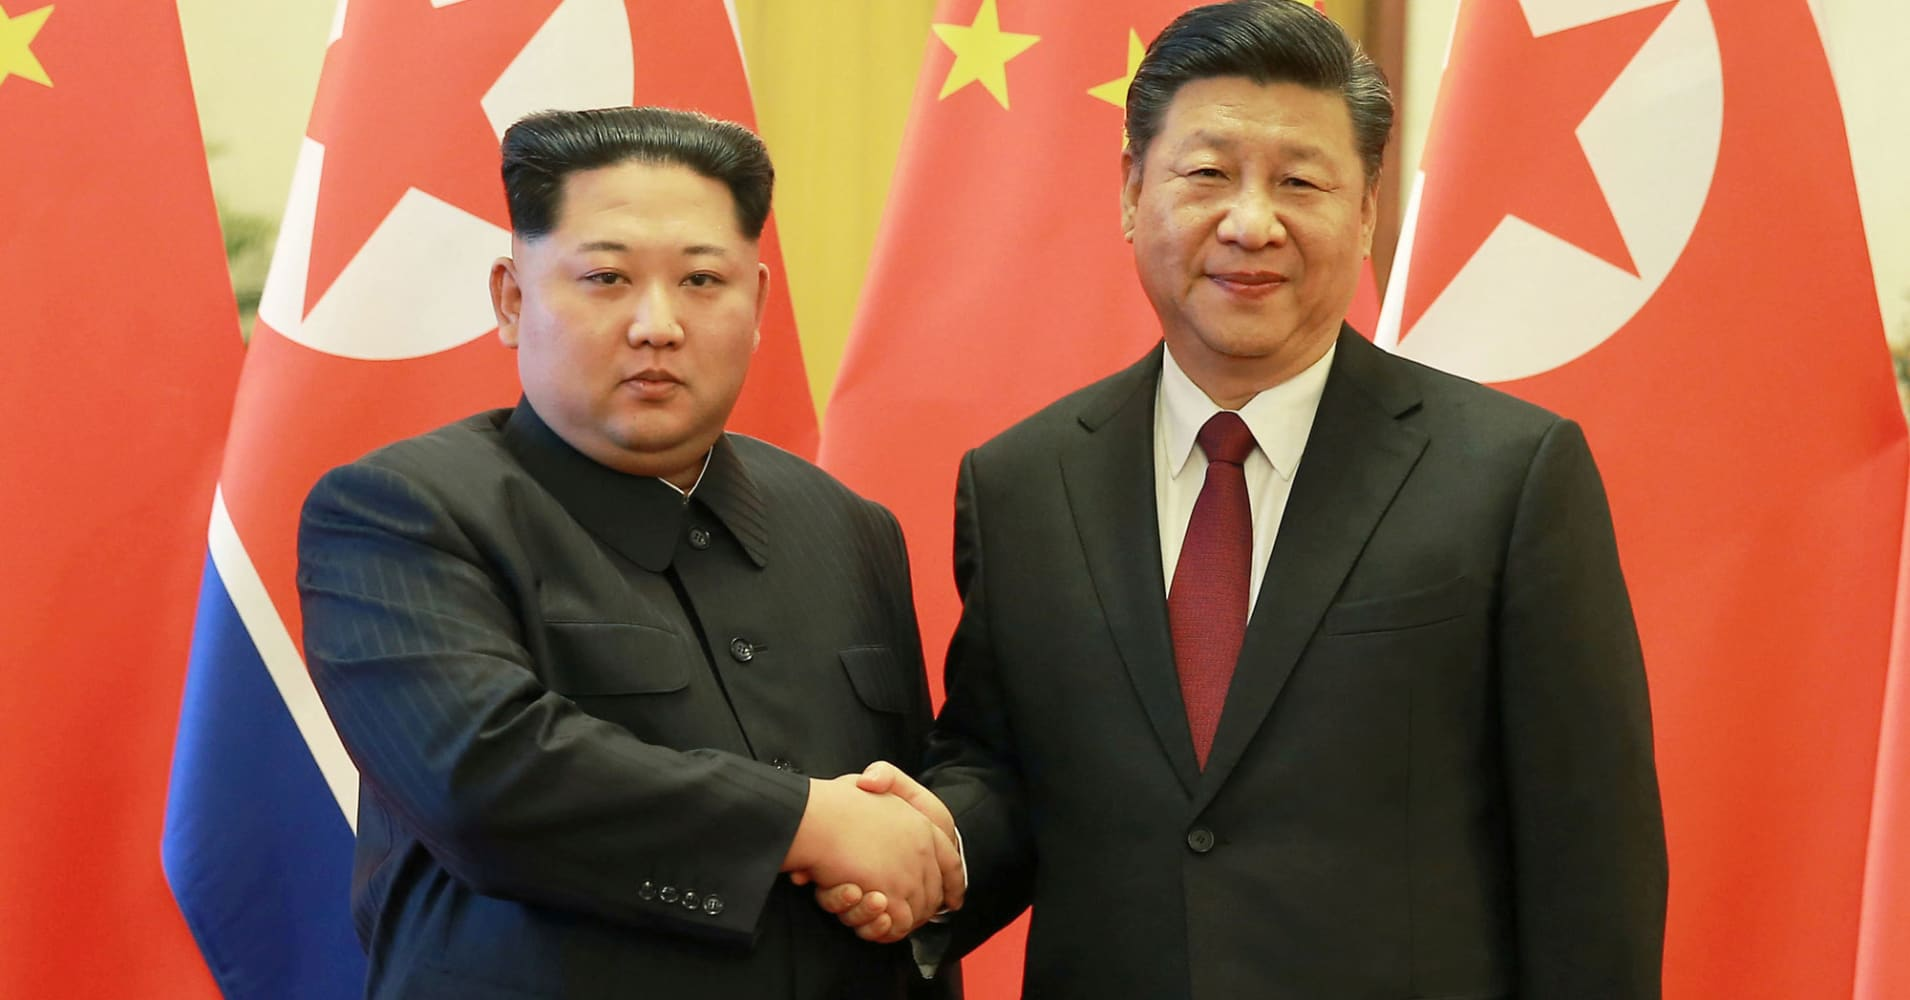 North Korea's Kim appears to have a big goal: Winning Belt and Road investments from Beijing